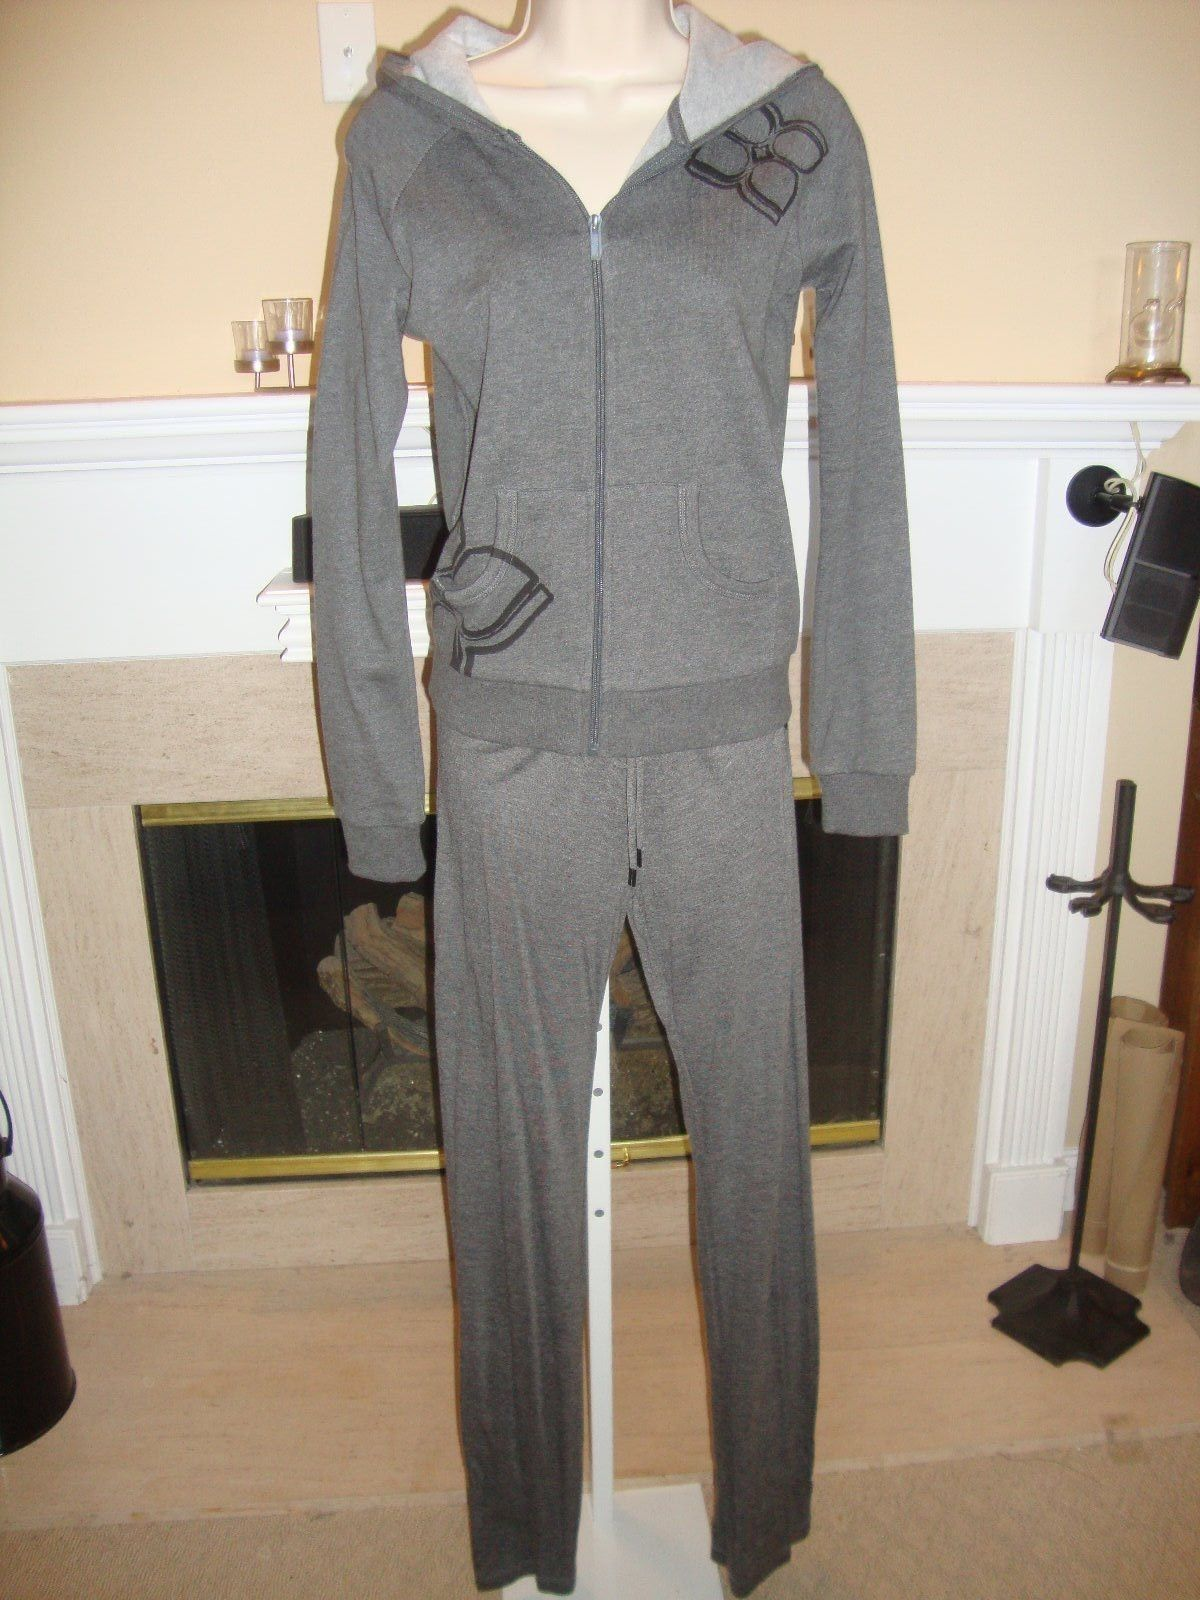 STYLISH NEW $188 GRAY BCBG SWEATS/TRACK SUIT (NWT) - $103.55